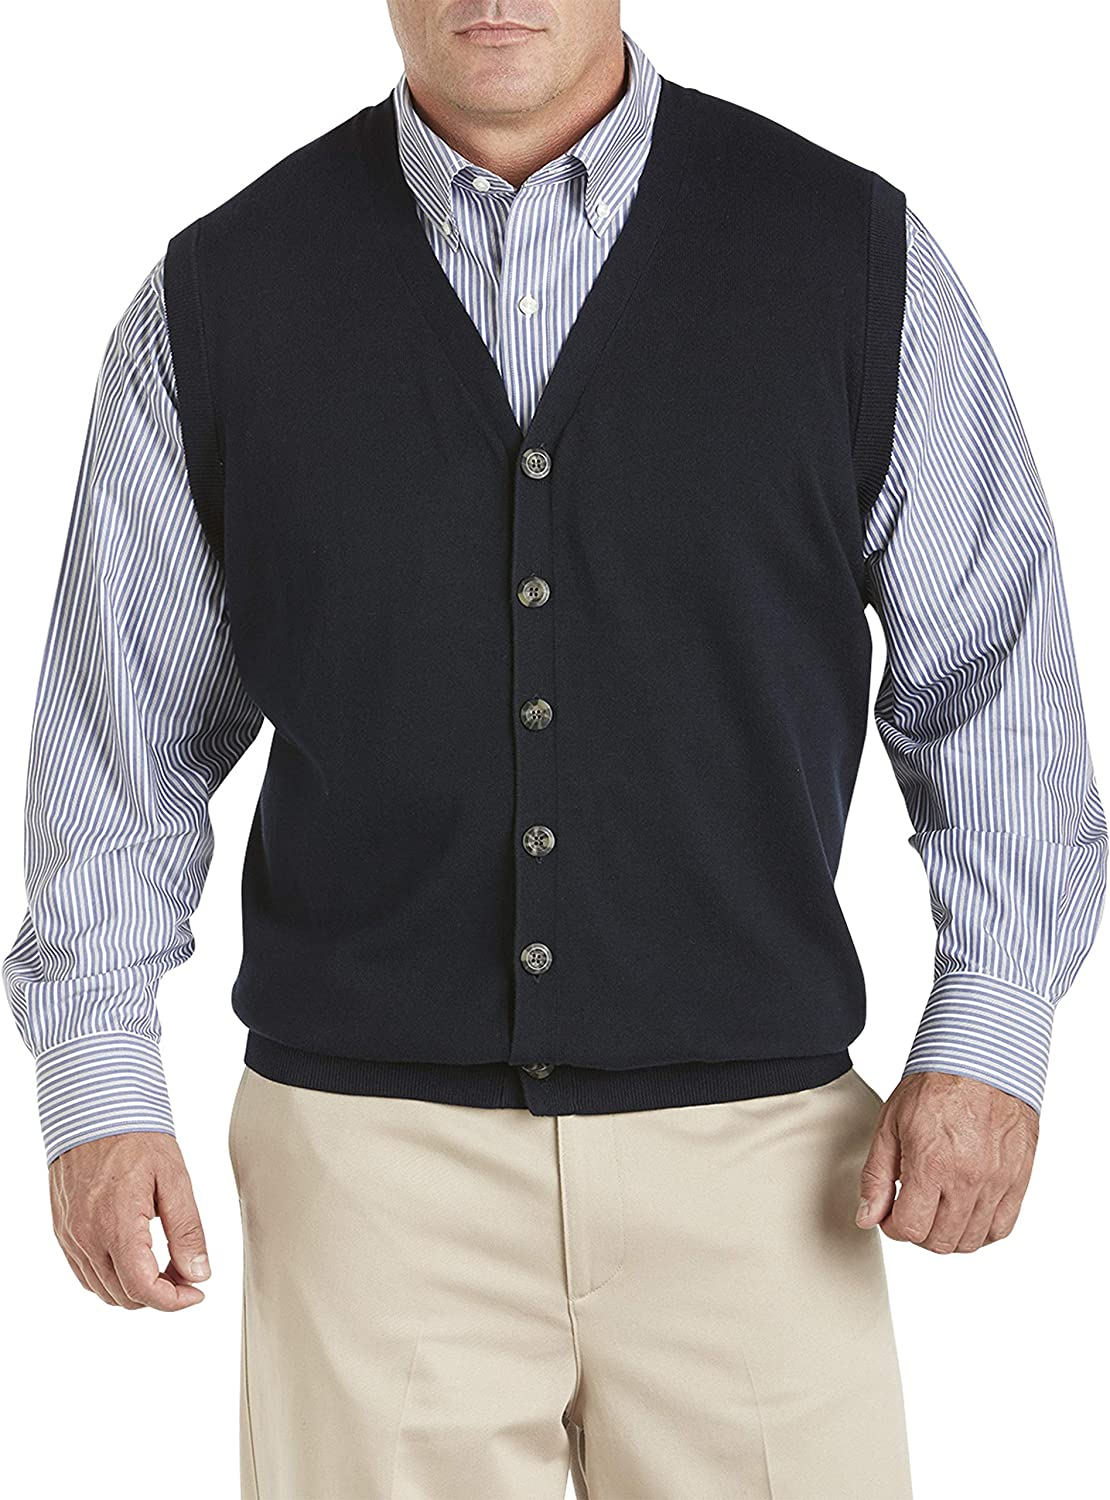 Oak Industry No. 1 Hill by DXL Big Tall Button-Front Sweater and Vest New arrival